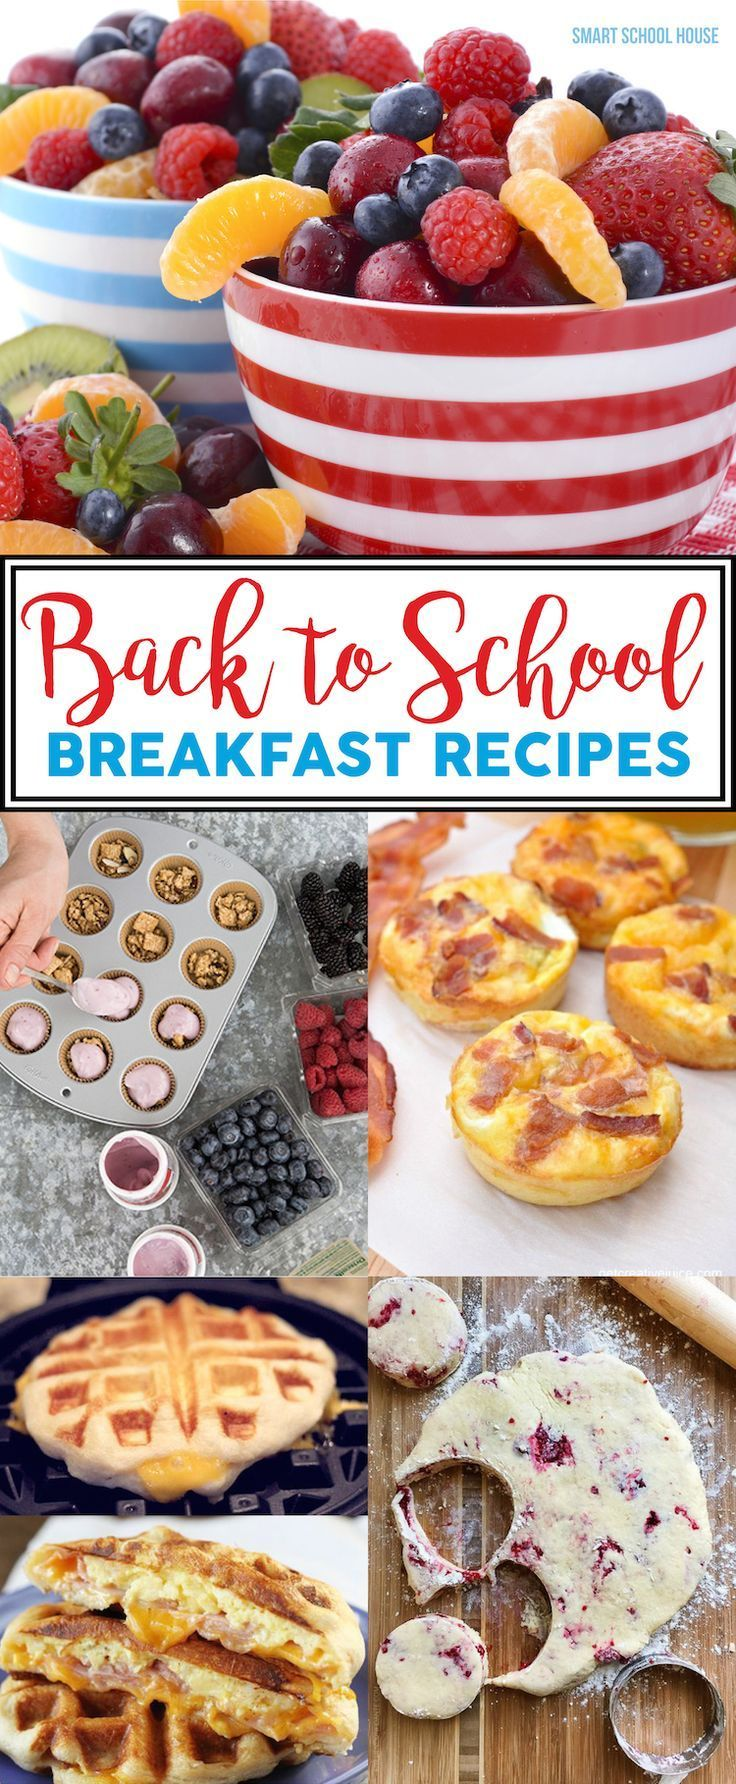 Back to School Breakfast Recipes - some fabulous back to school breakfast recipes and ideas that you can make ahead or in a hurry.